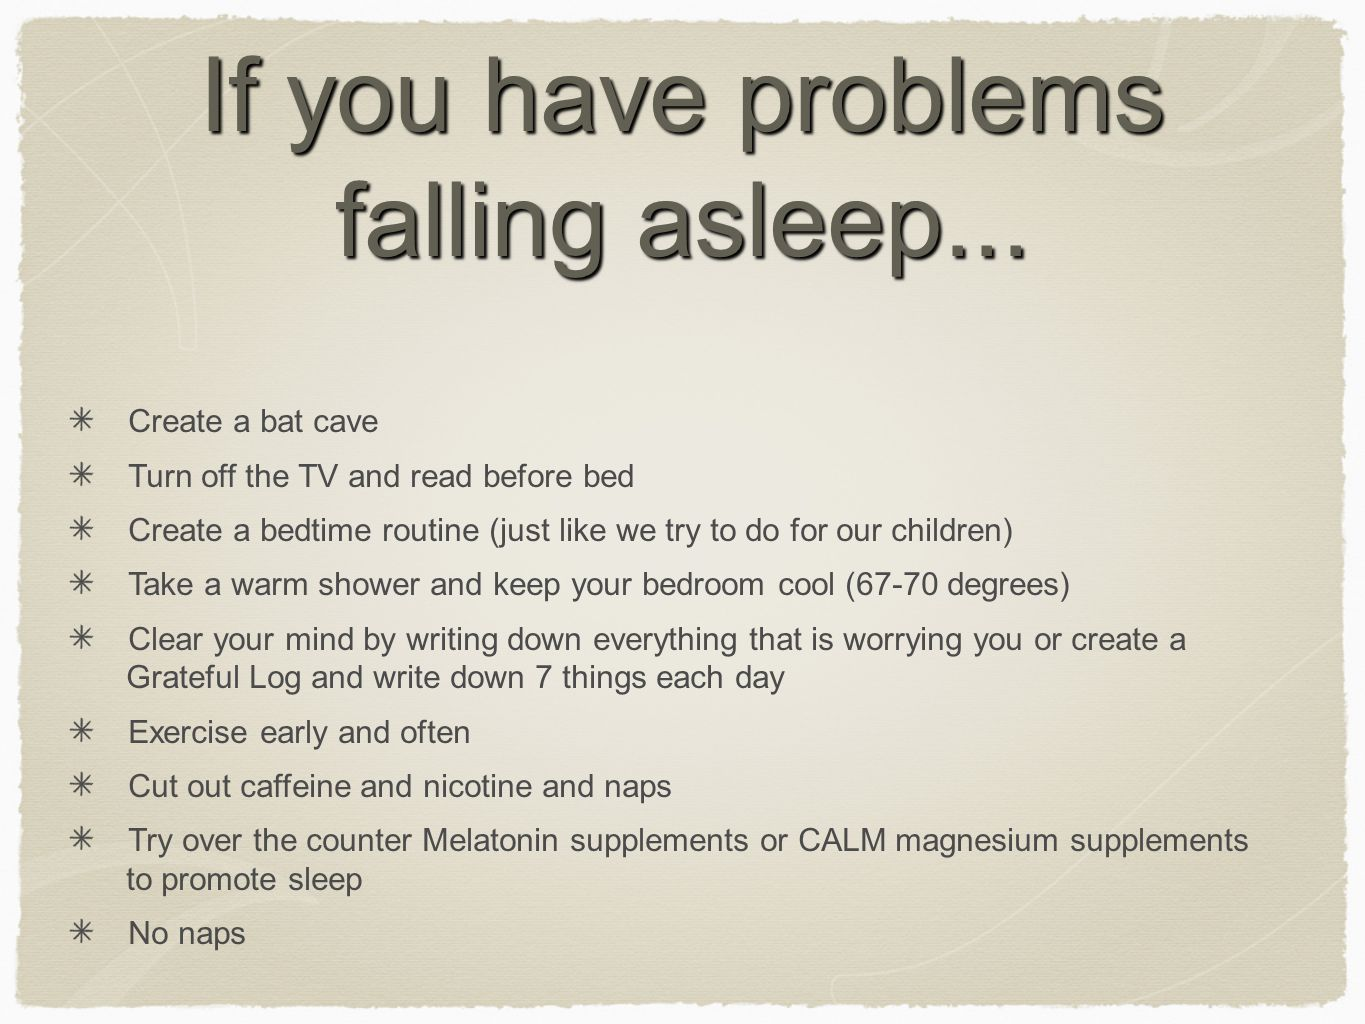 If you have problems falling asleep...